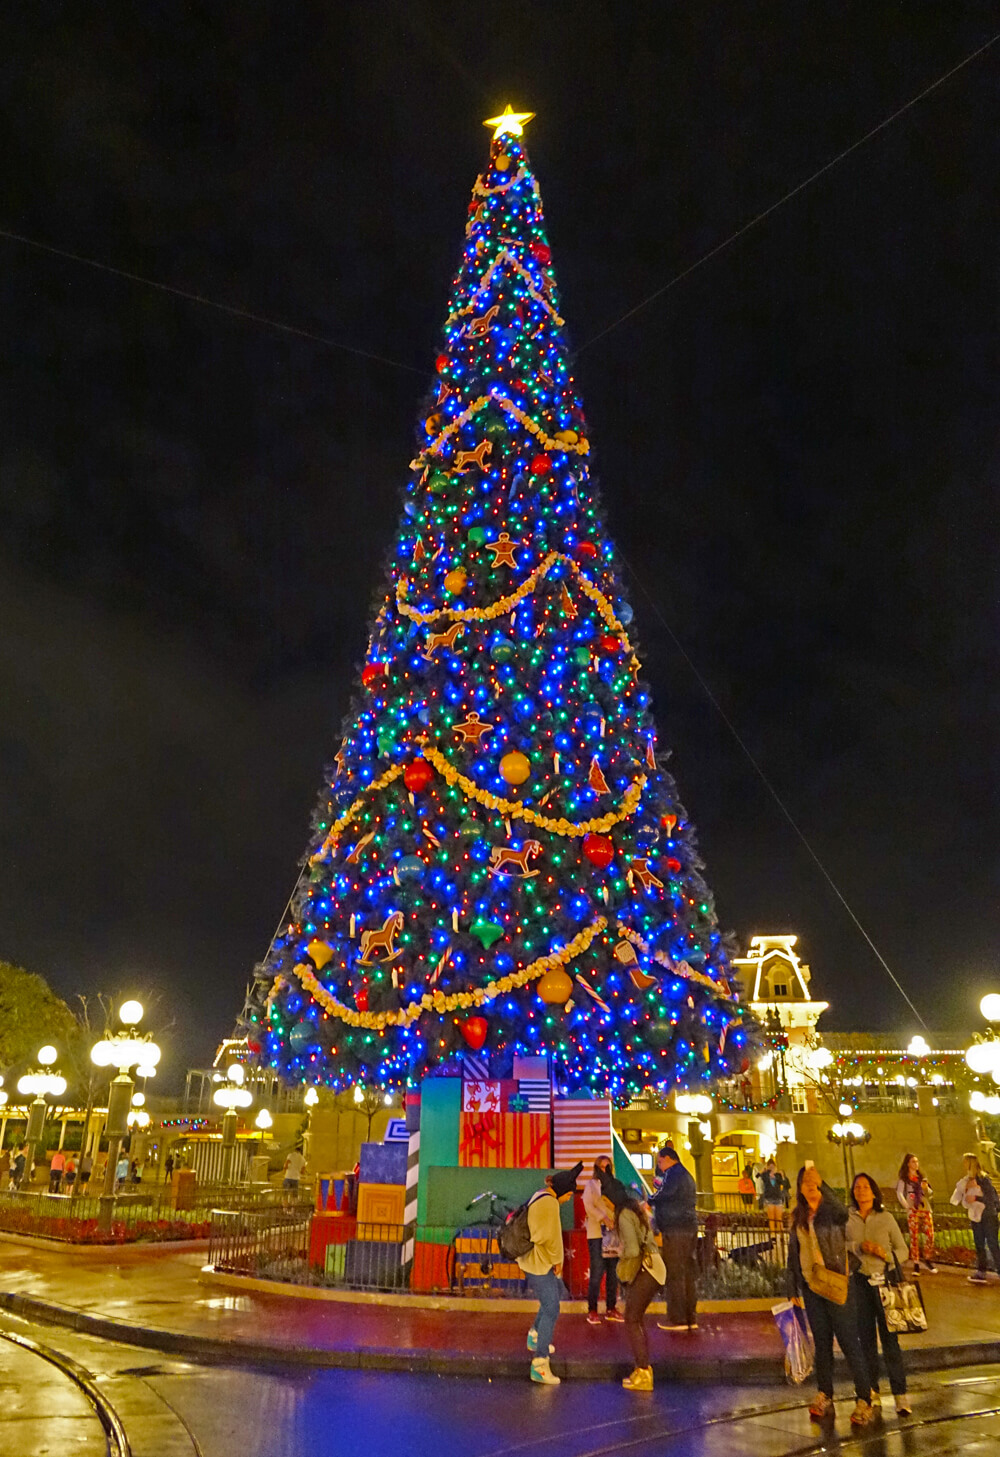 disney world holiday events 2018 magic kingdom tree - When Is Disney Decorated For Christmas